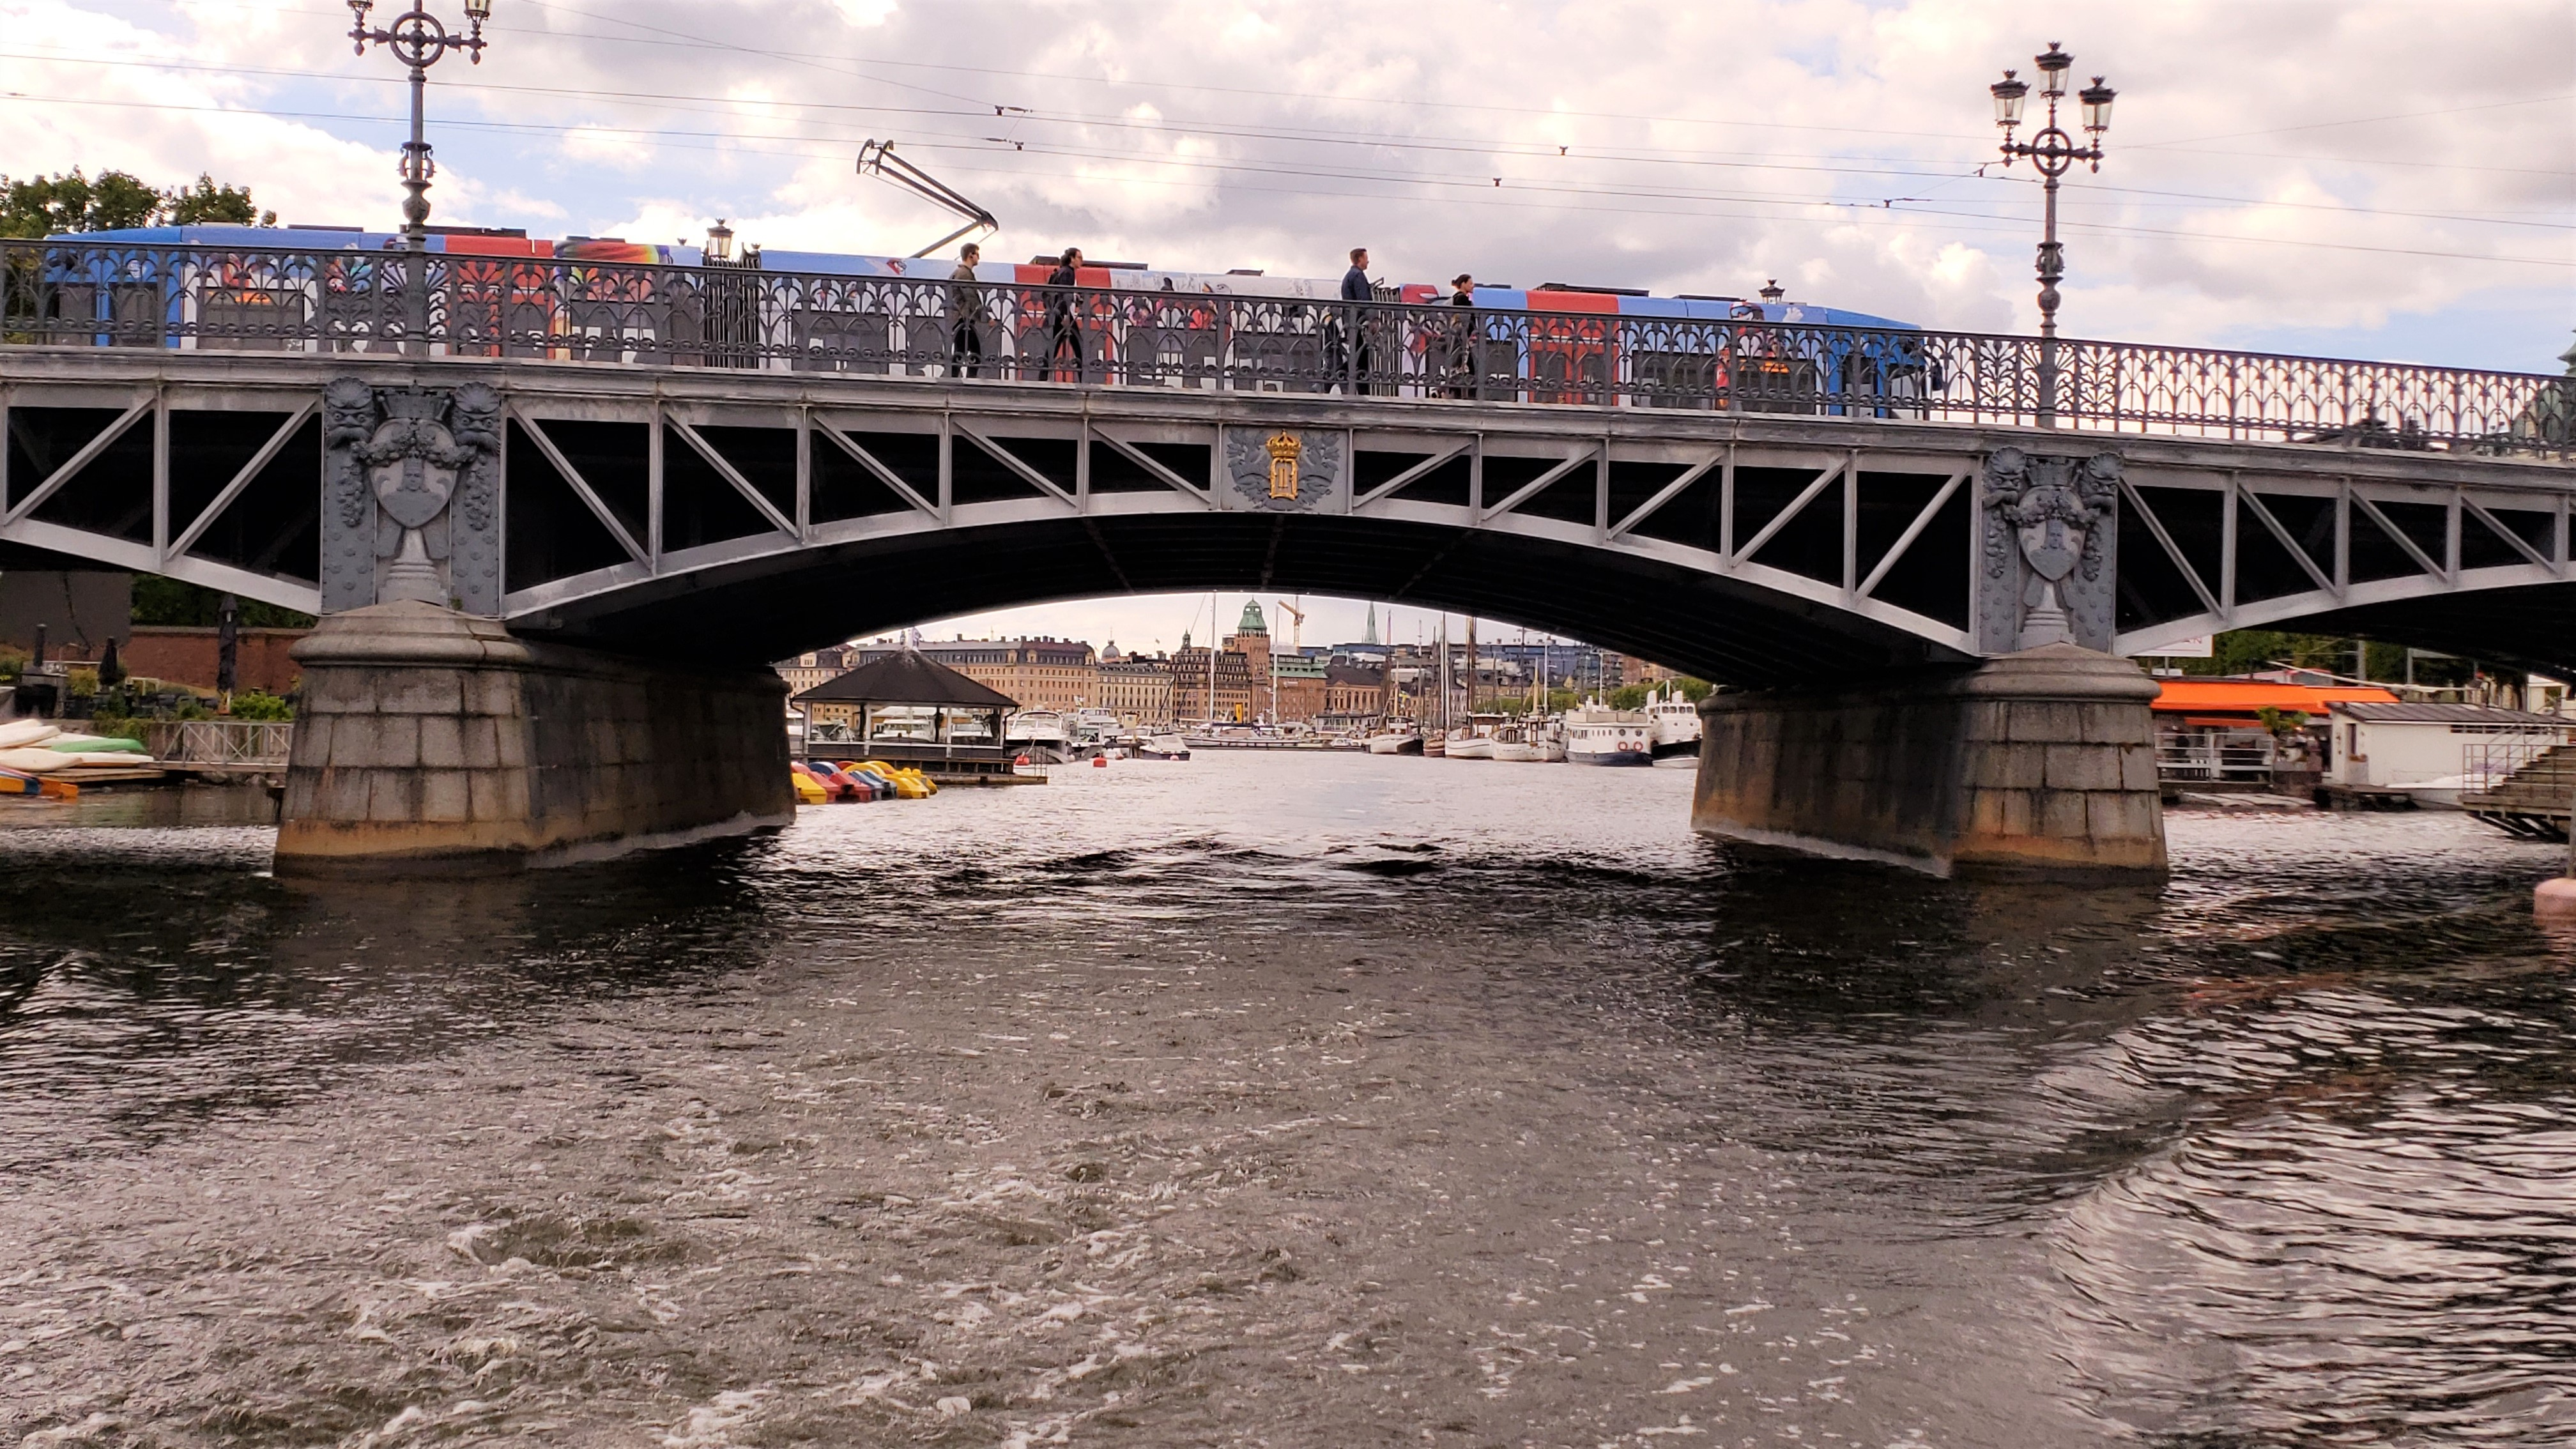 Canal Cruise - Stockholm - 3 Days in Stockholm